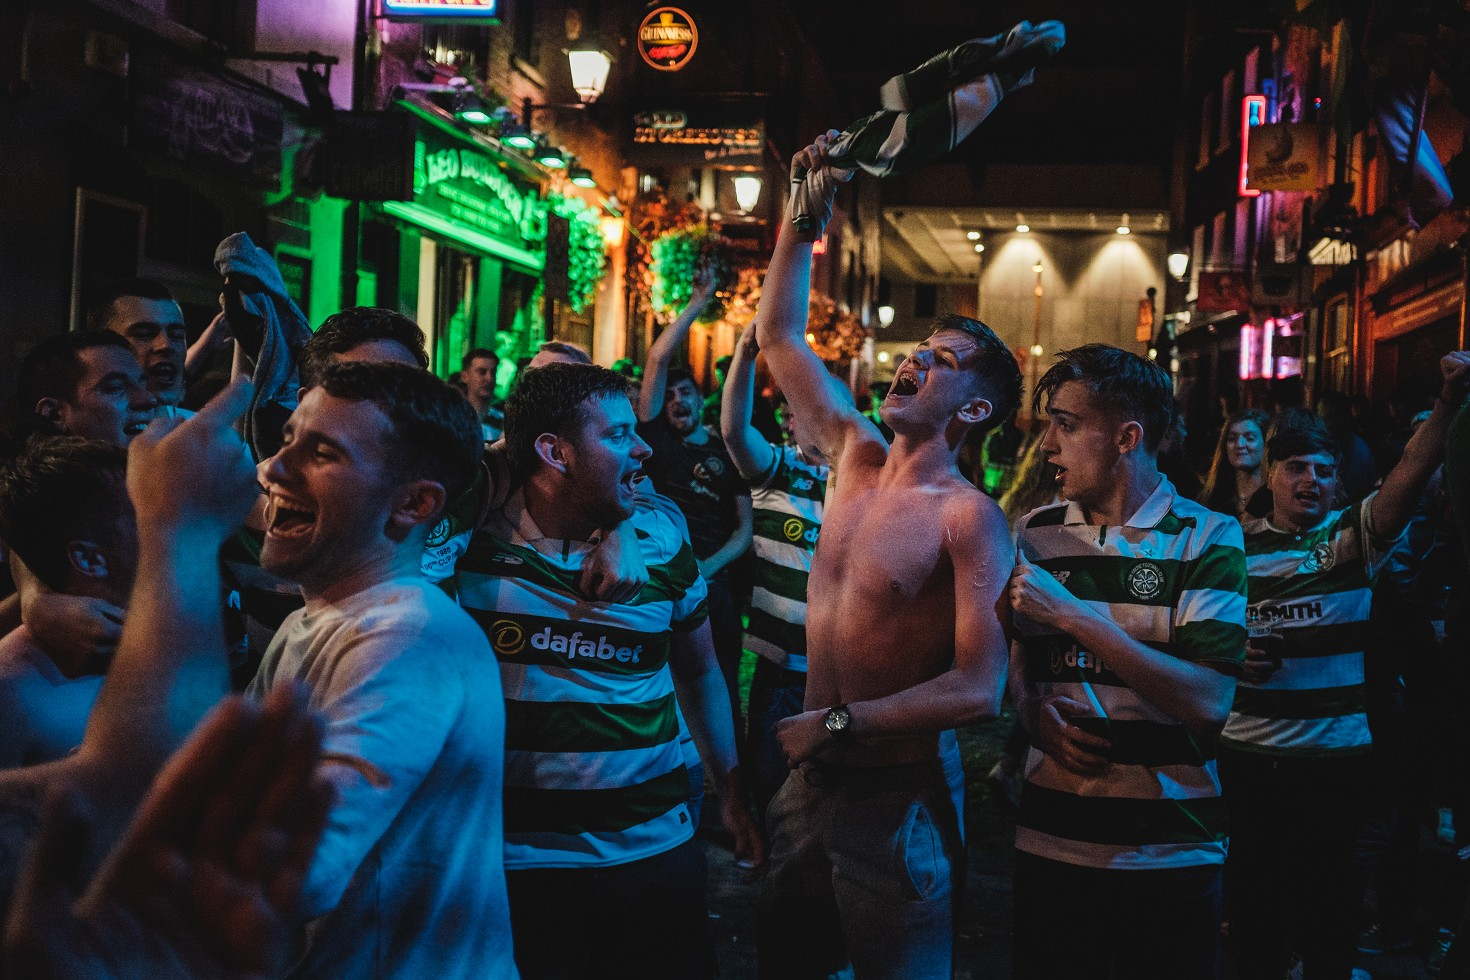 Celtic-Barca-Barcelona-Dublin-Temple-Bar-Aviva-Ireland-Fans (65 von 68)